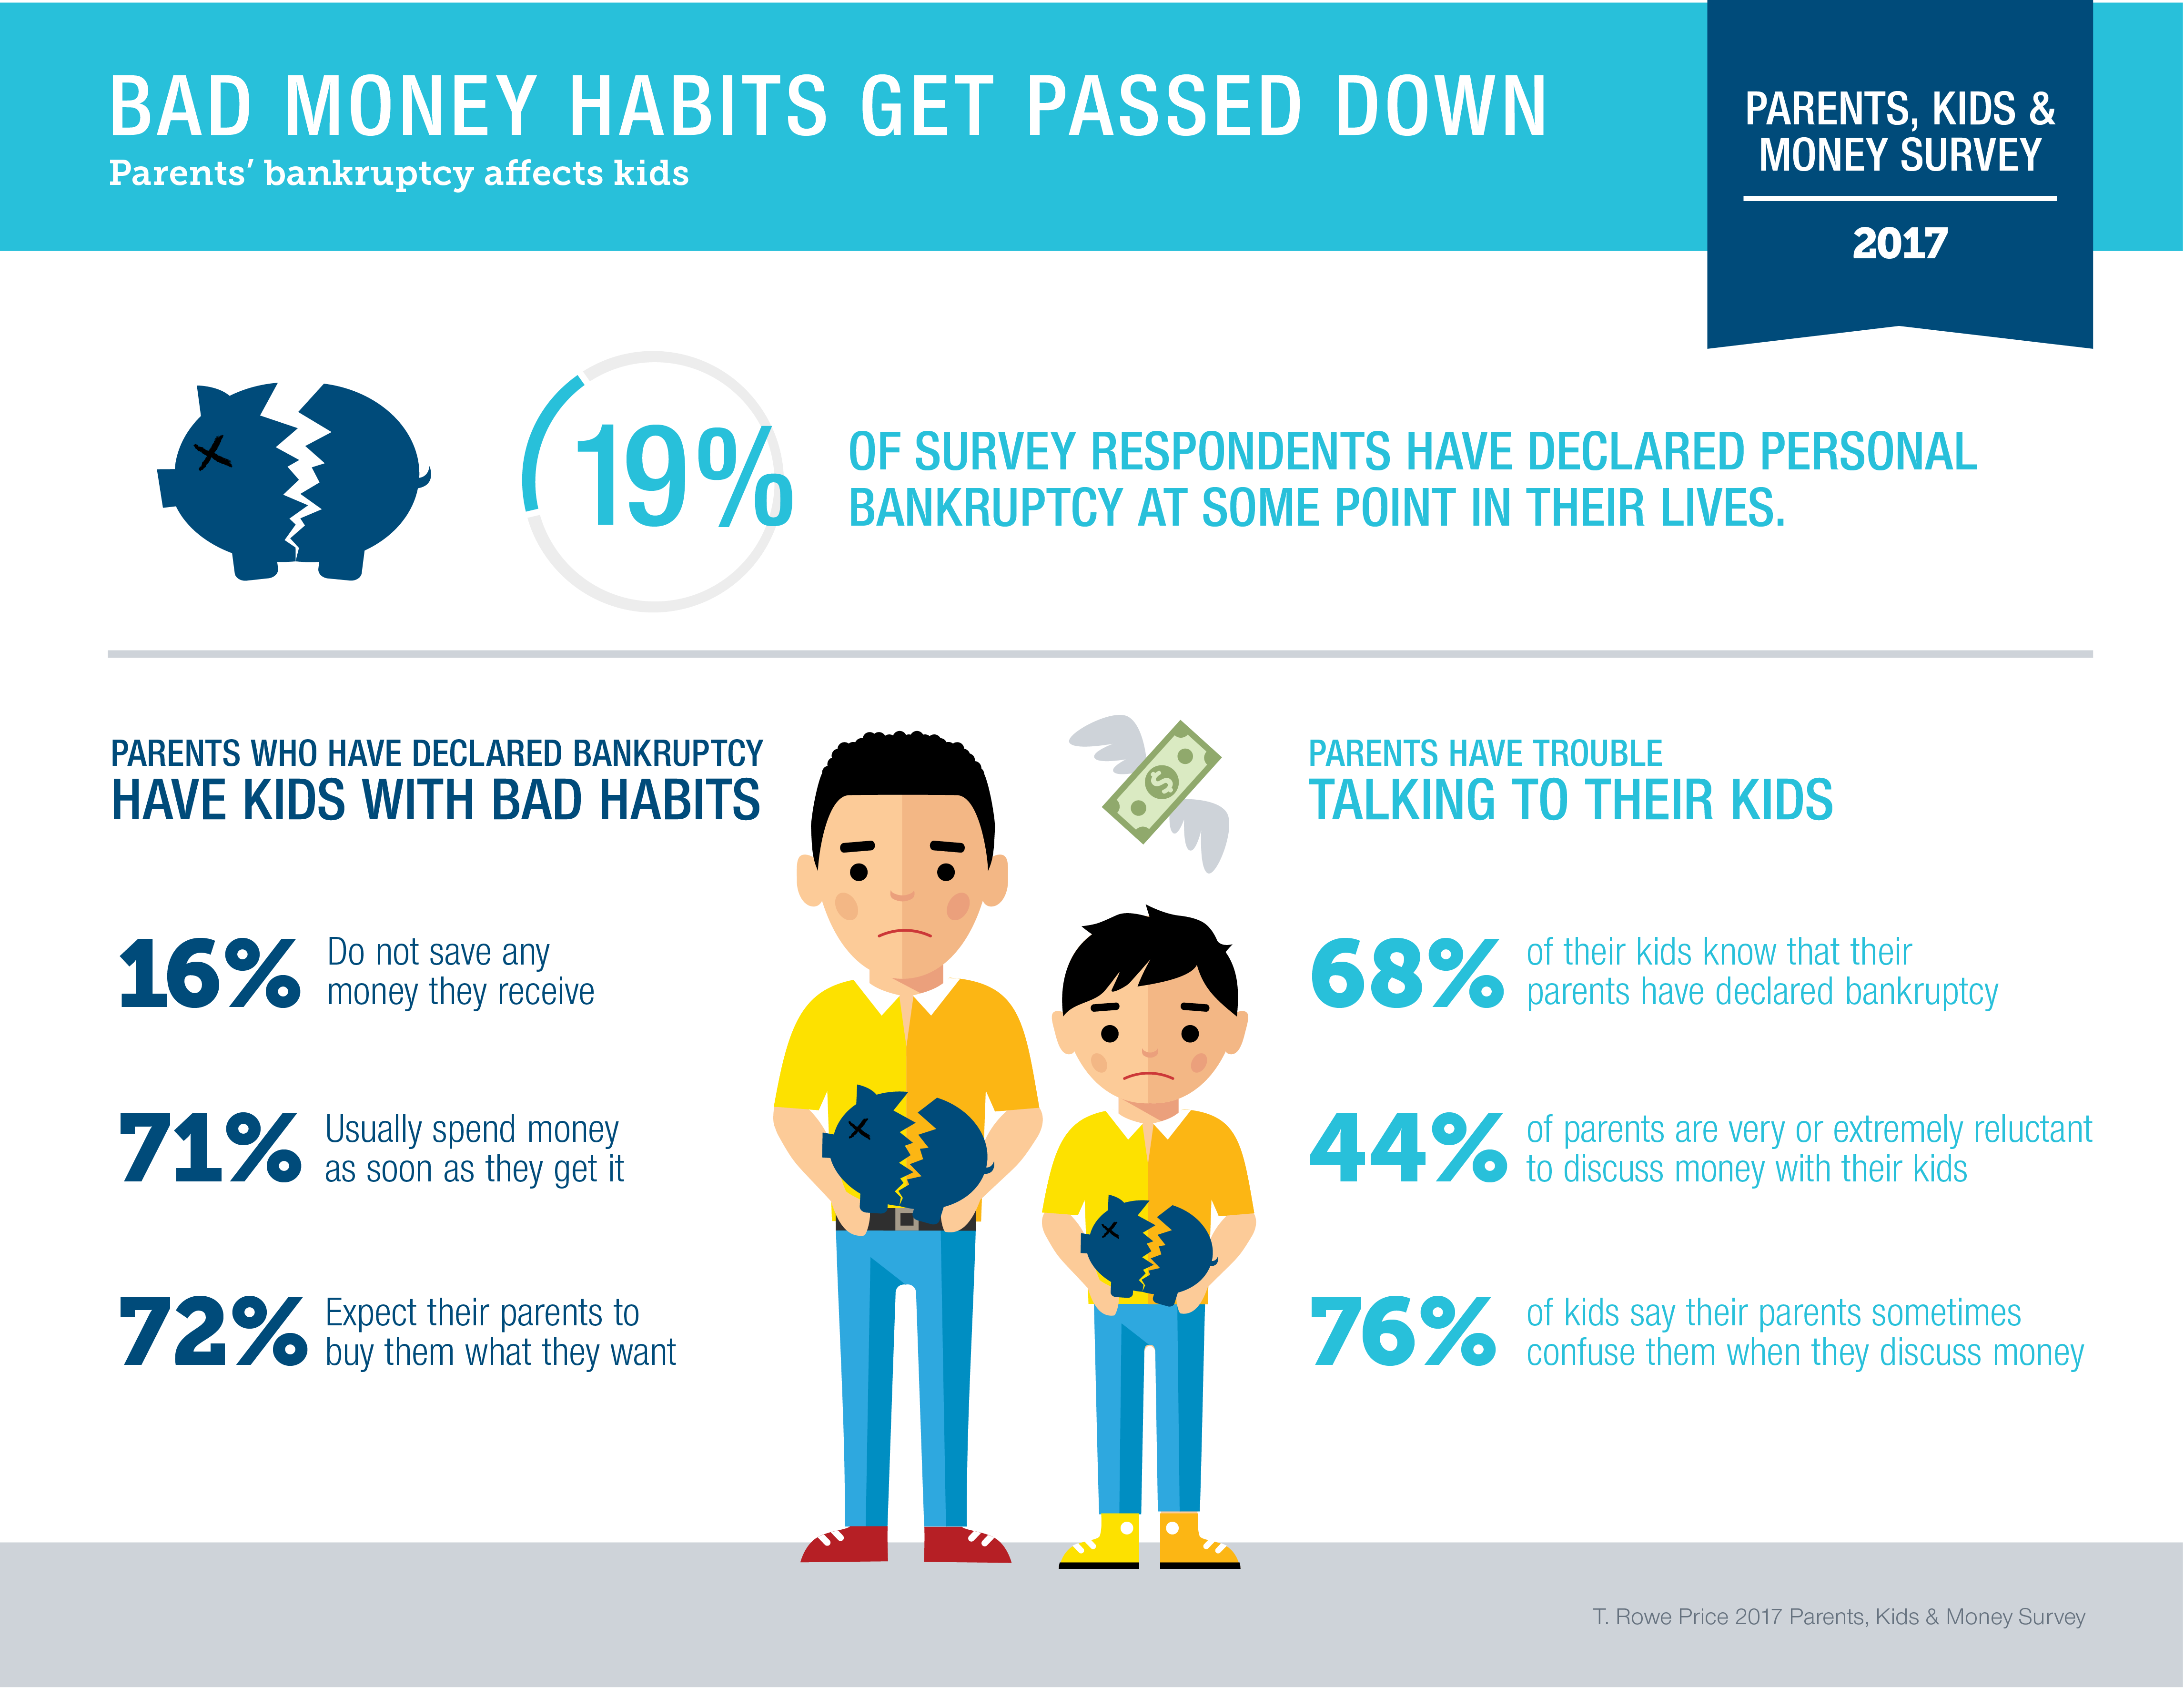 Good Things Kids Learn from Your Bad Habits - Parents